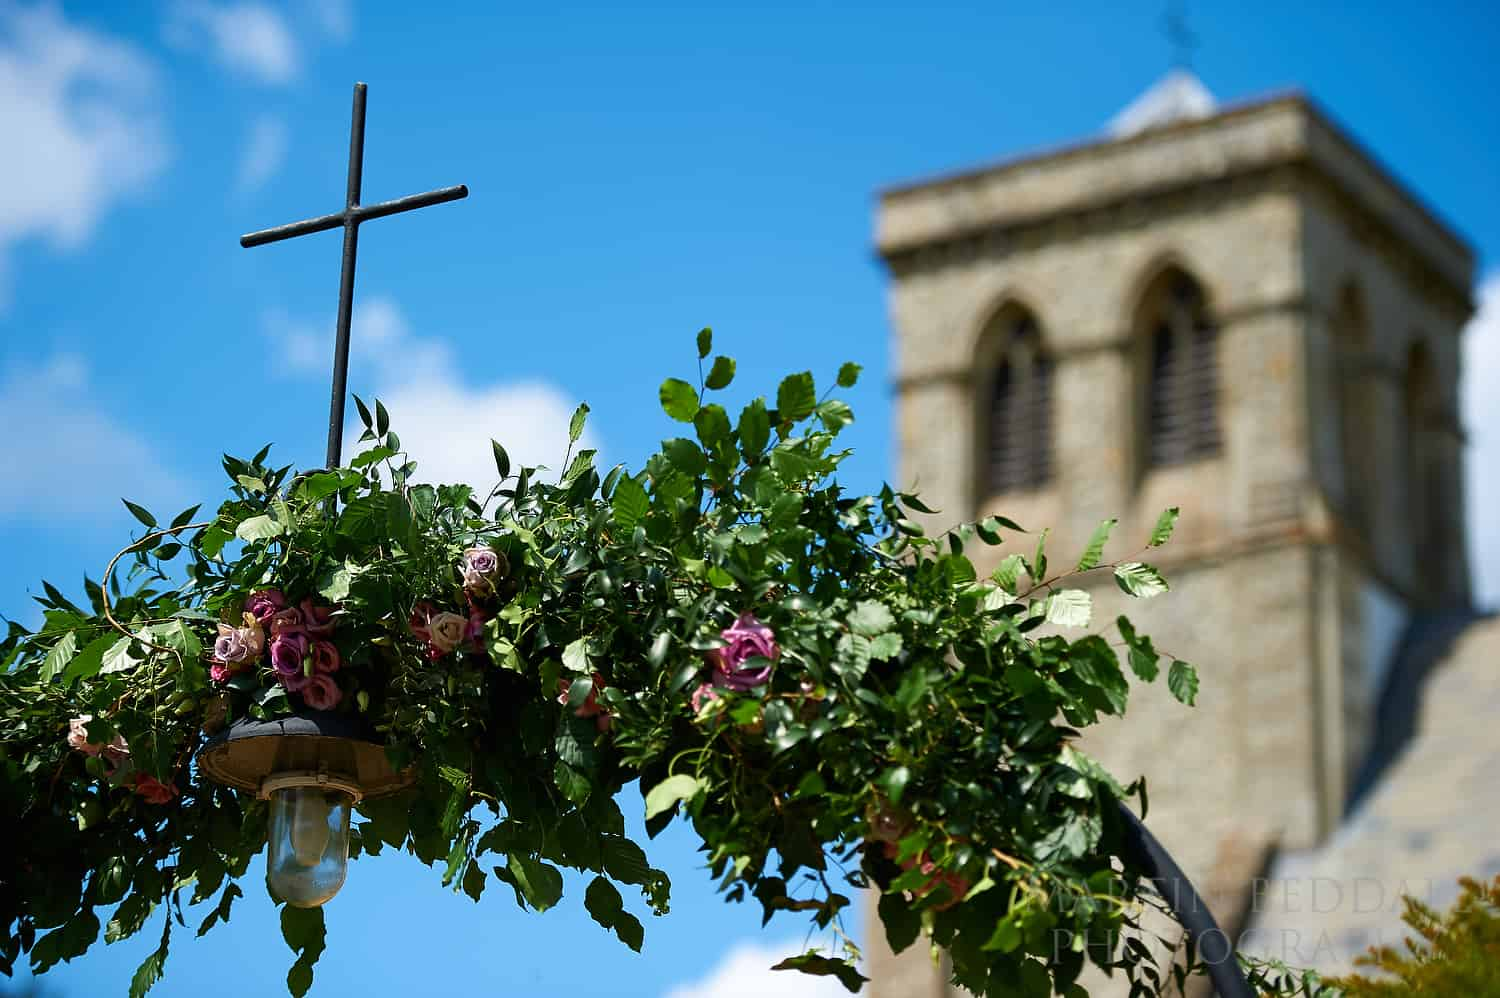 Floral arch at St Andrew's church in Dogmersfield